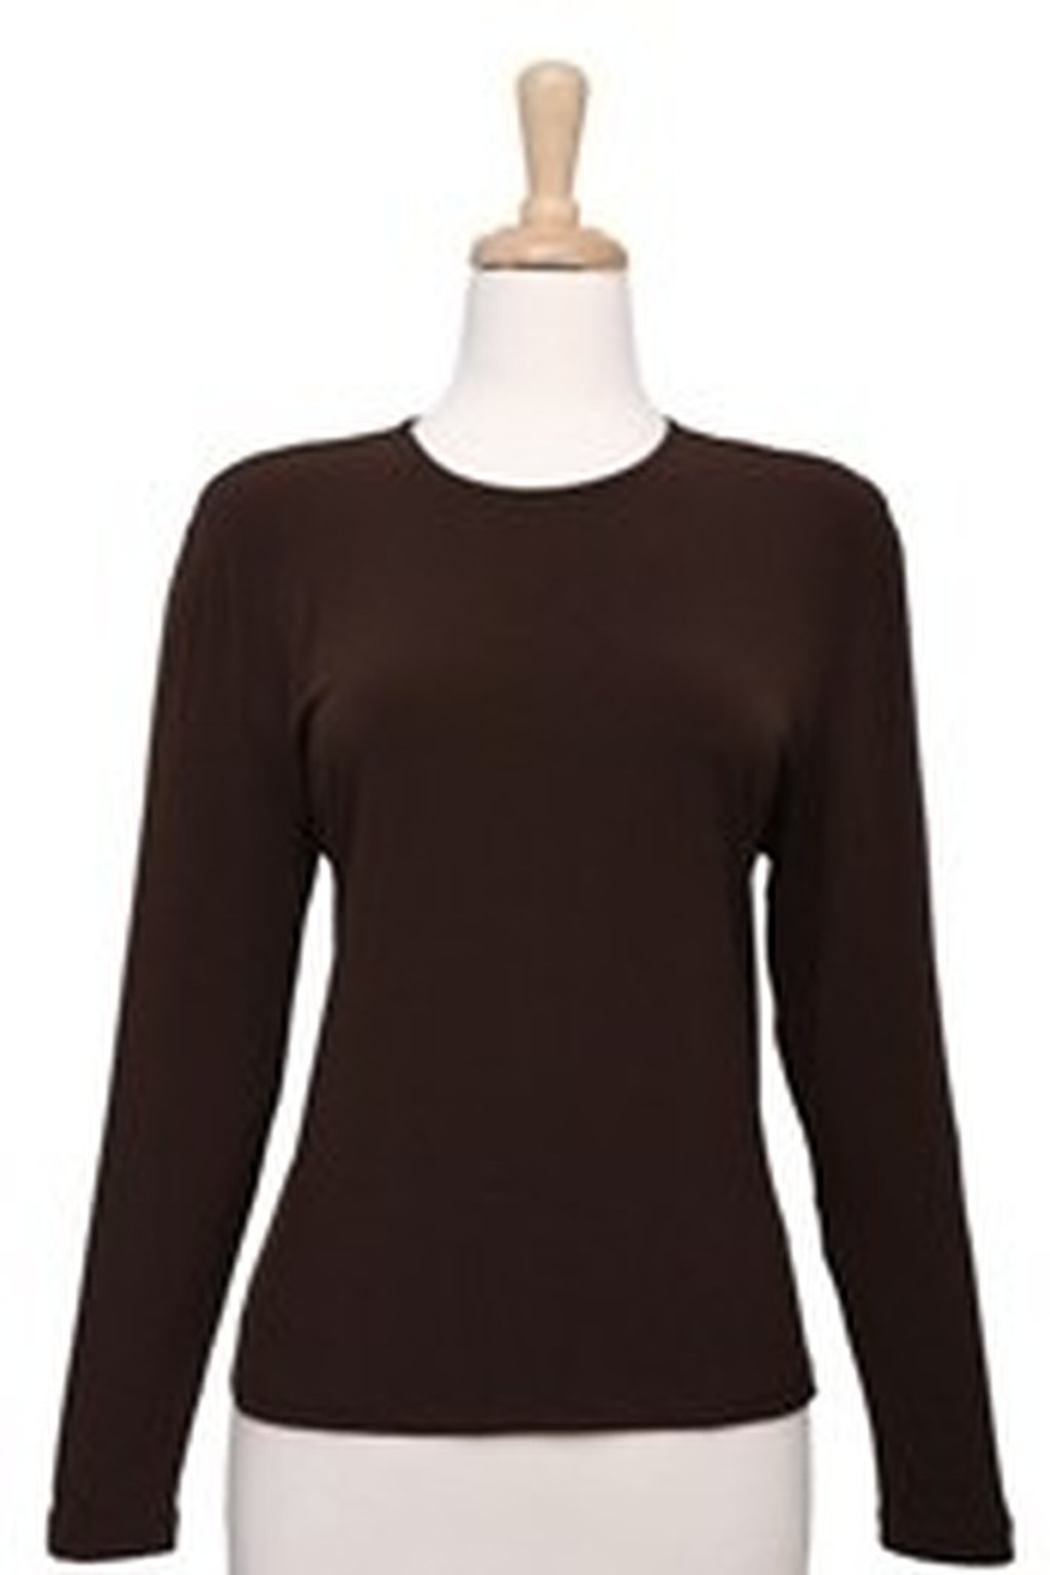 Ricci Fashions Long Sleeve Layer Shell Top Brown XS-XL - Main Image